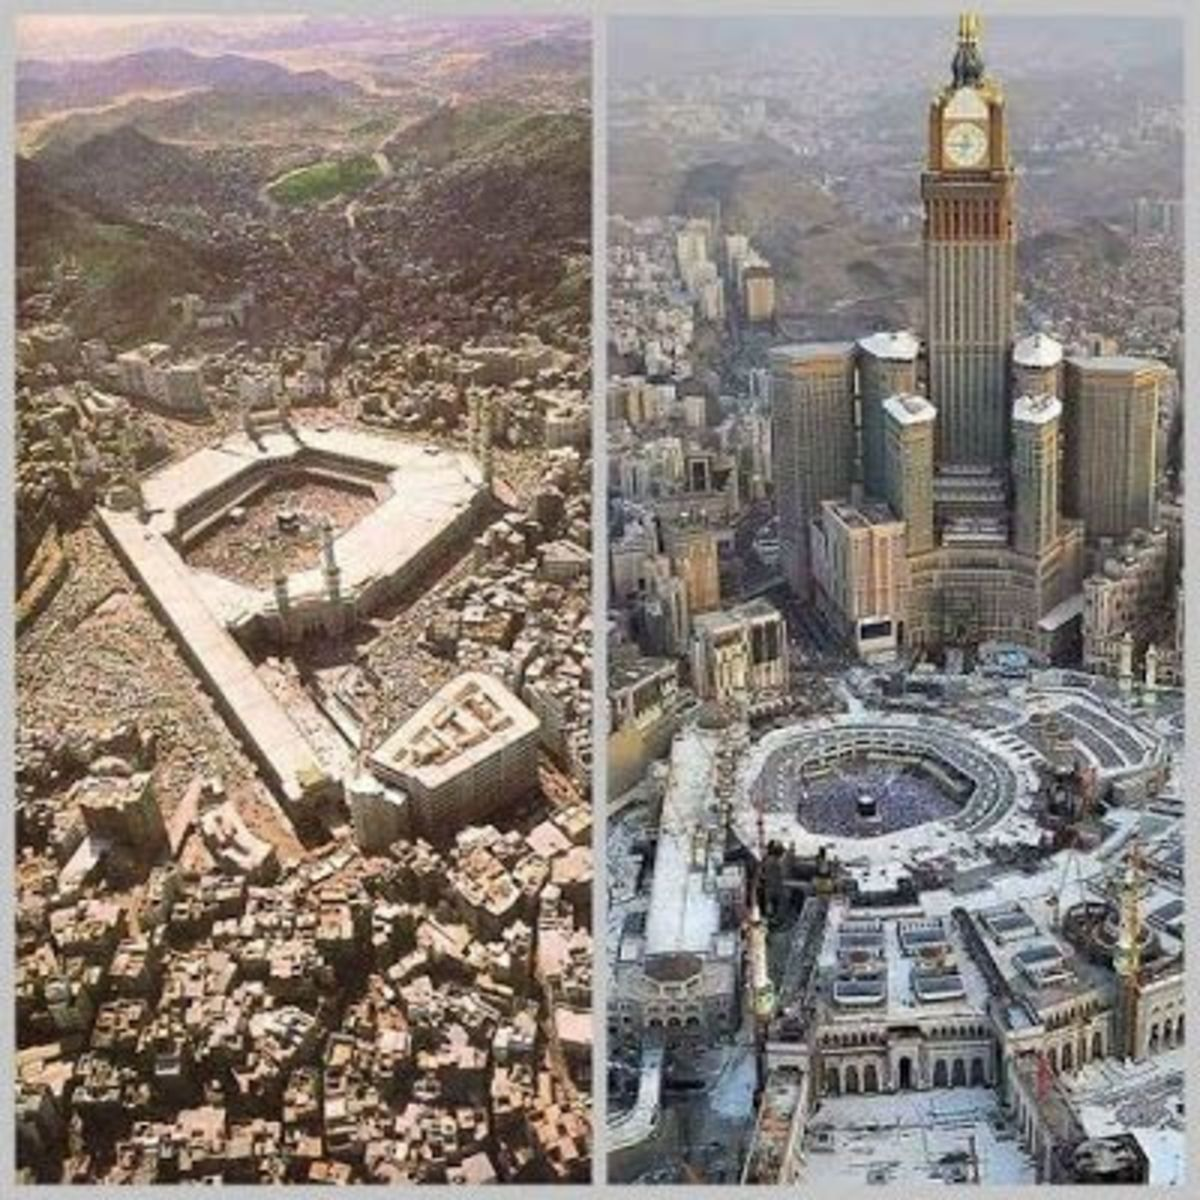 Old and New view of kabba